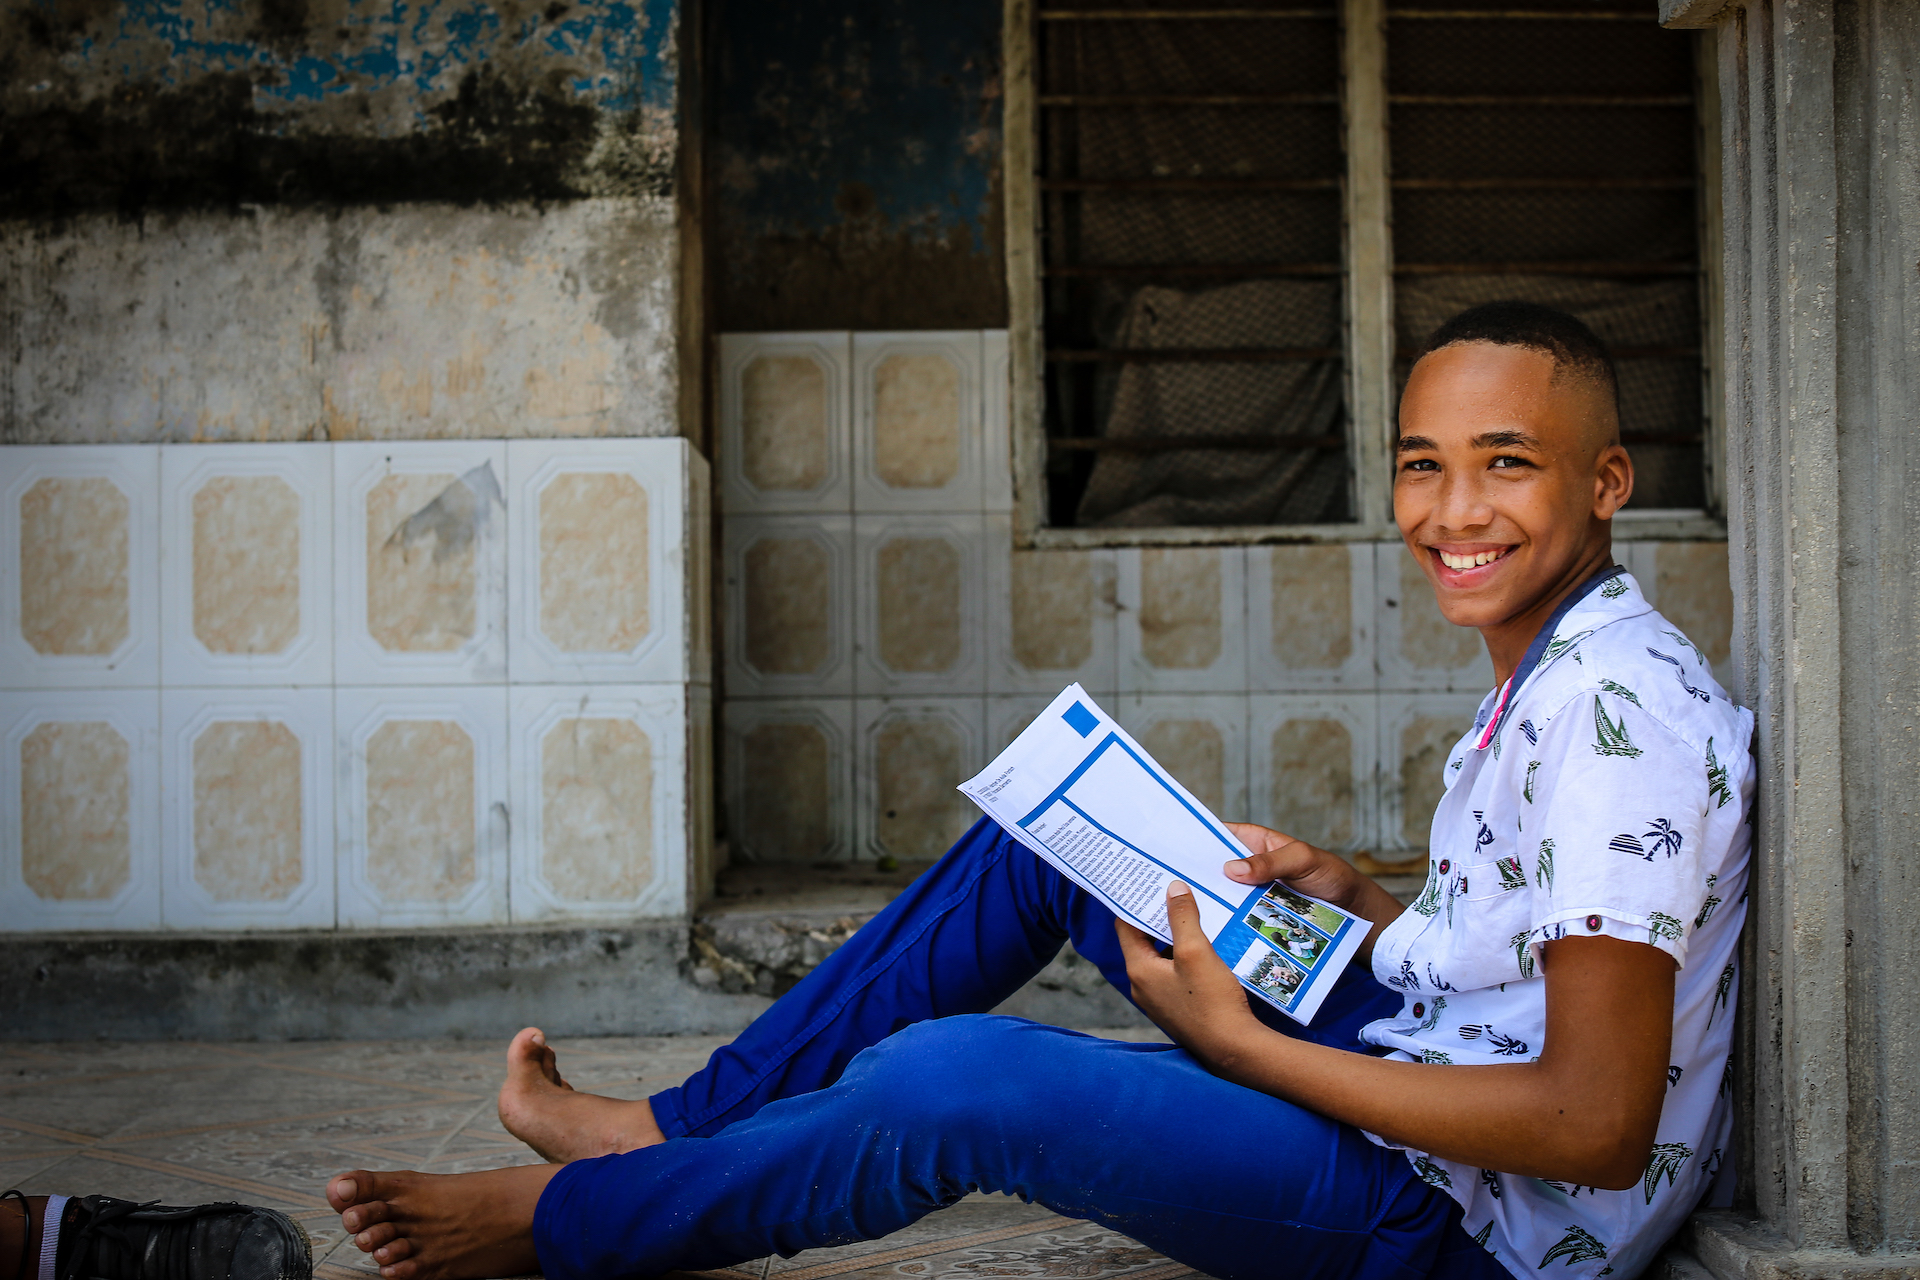 A teenage boy in Colombia sits on a ledge reading a letter from his sponsor.